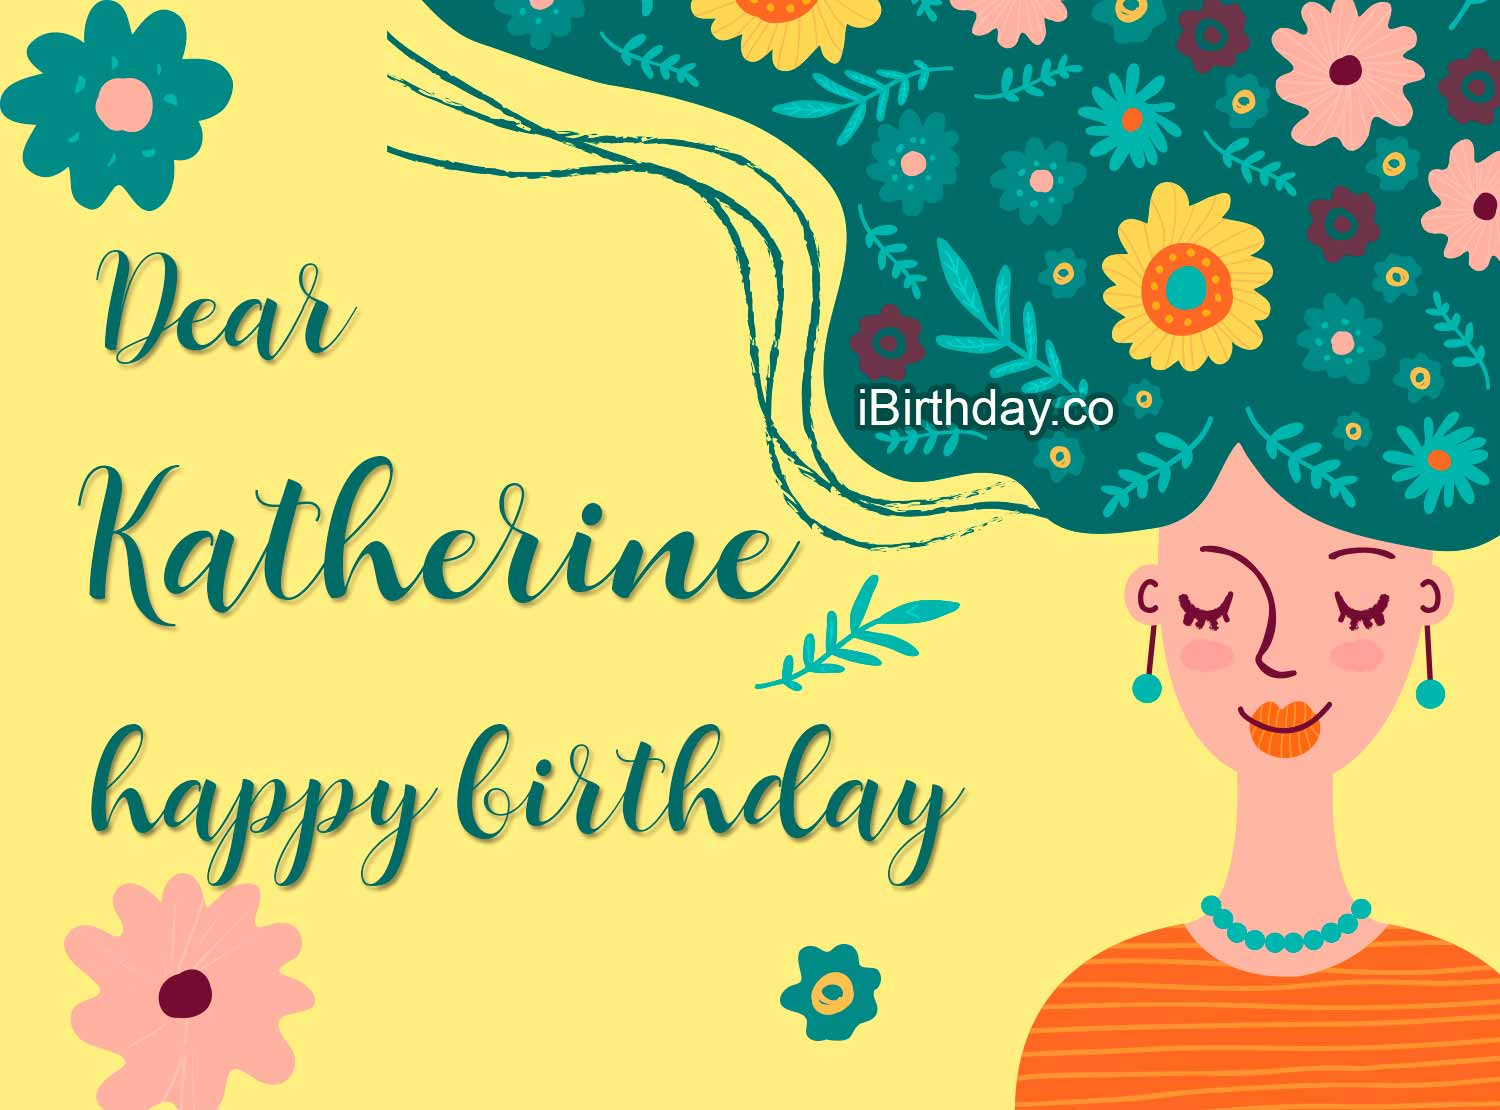 Katherine Girl With Flowers Happy Birthday